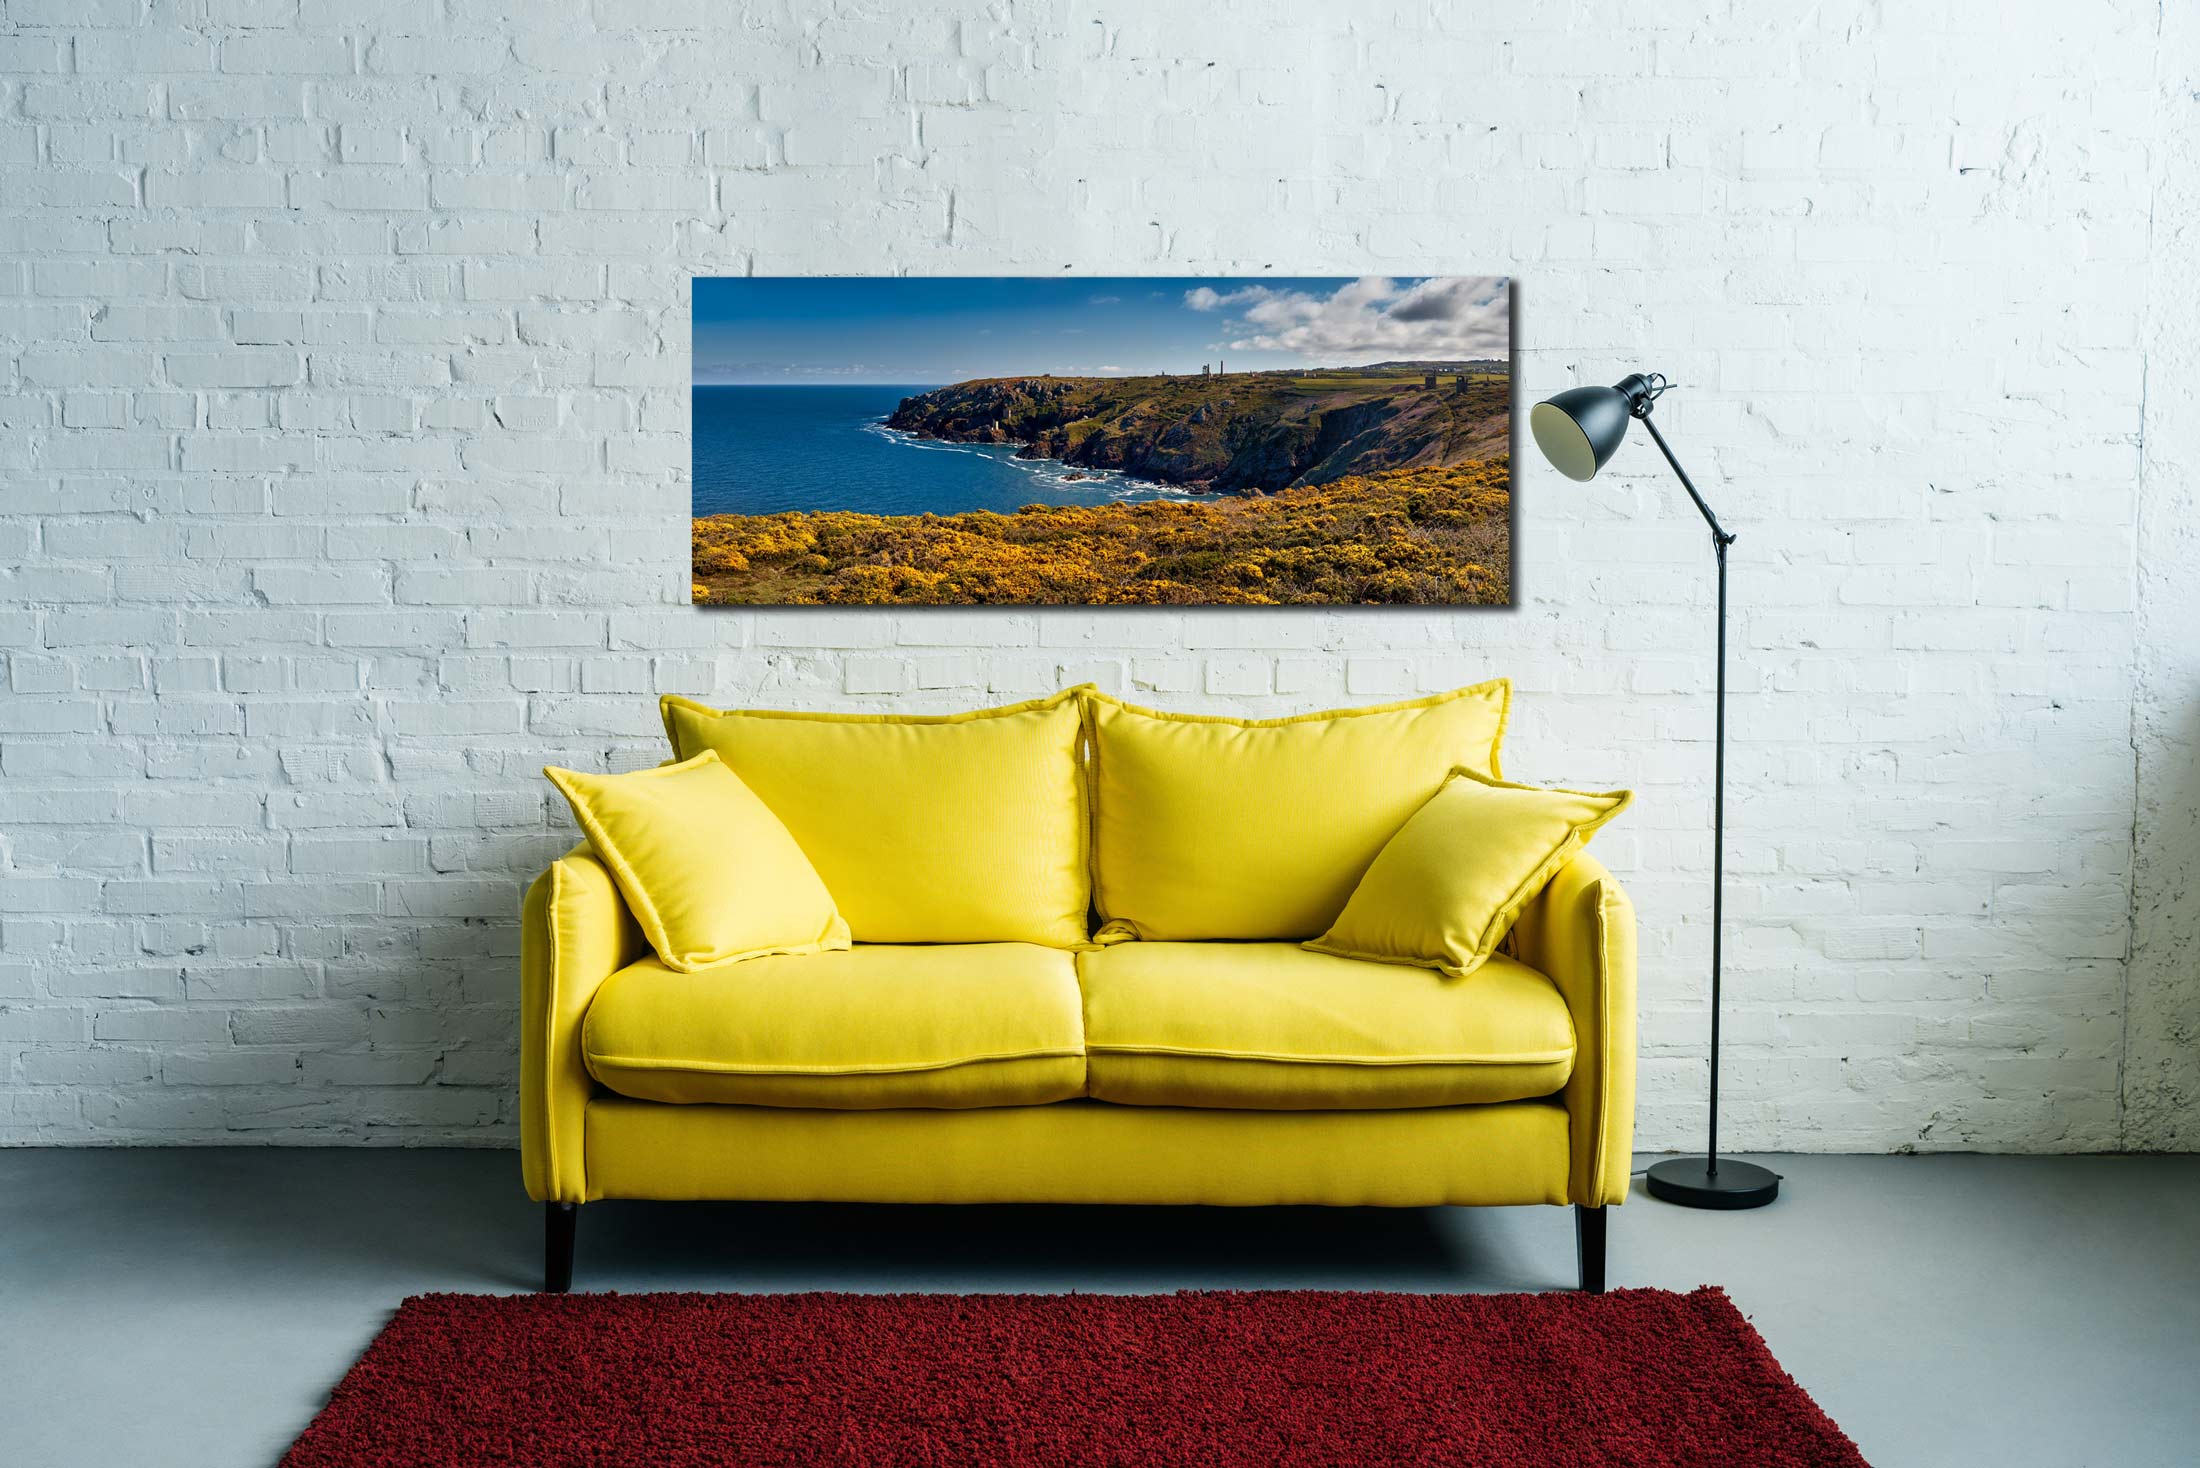 View over the coastal yellow Gorse to the mine ruins on the cliffs at Botallack - Print Aluminium Backing With Acrylic Glazing on Wall